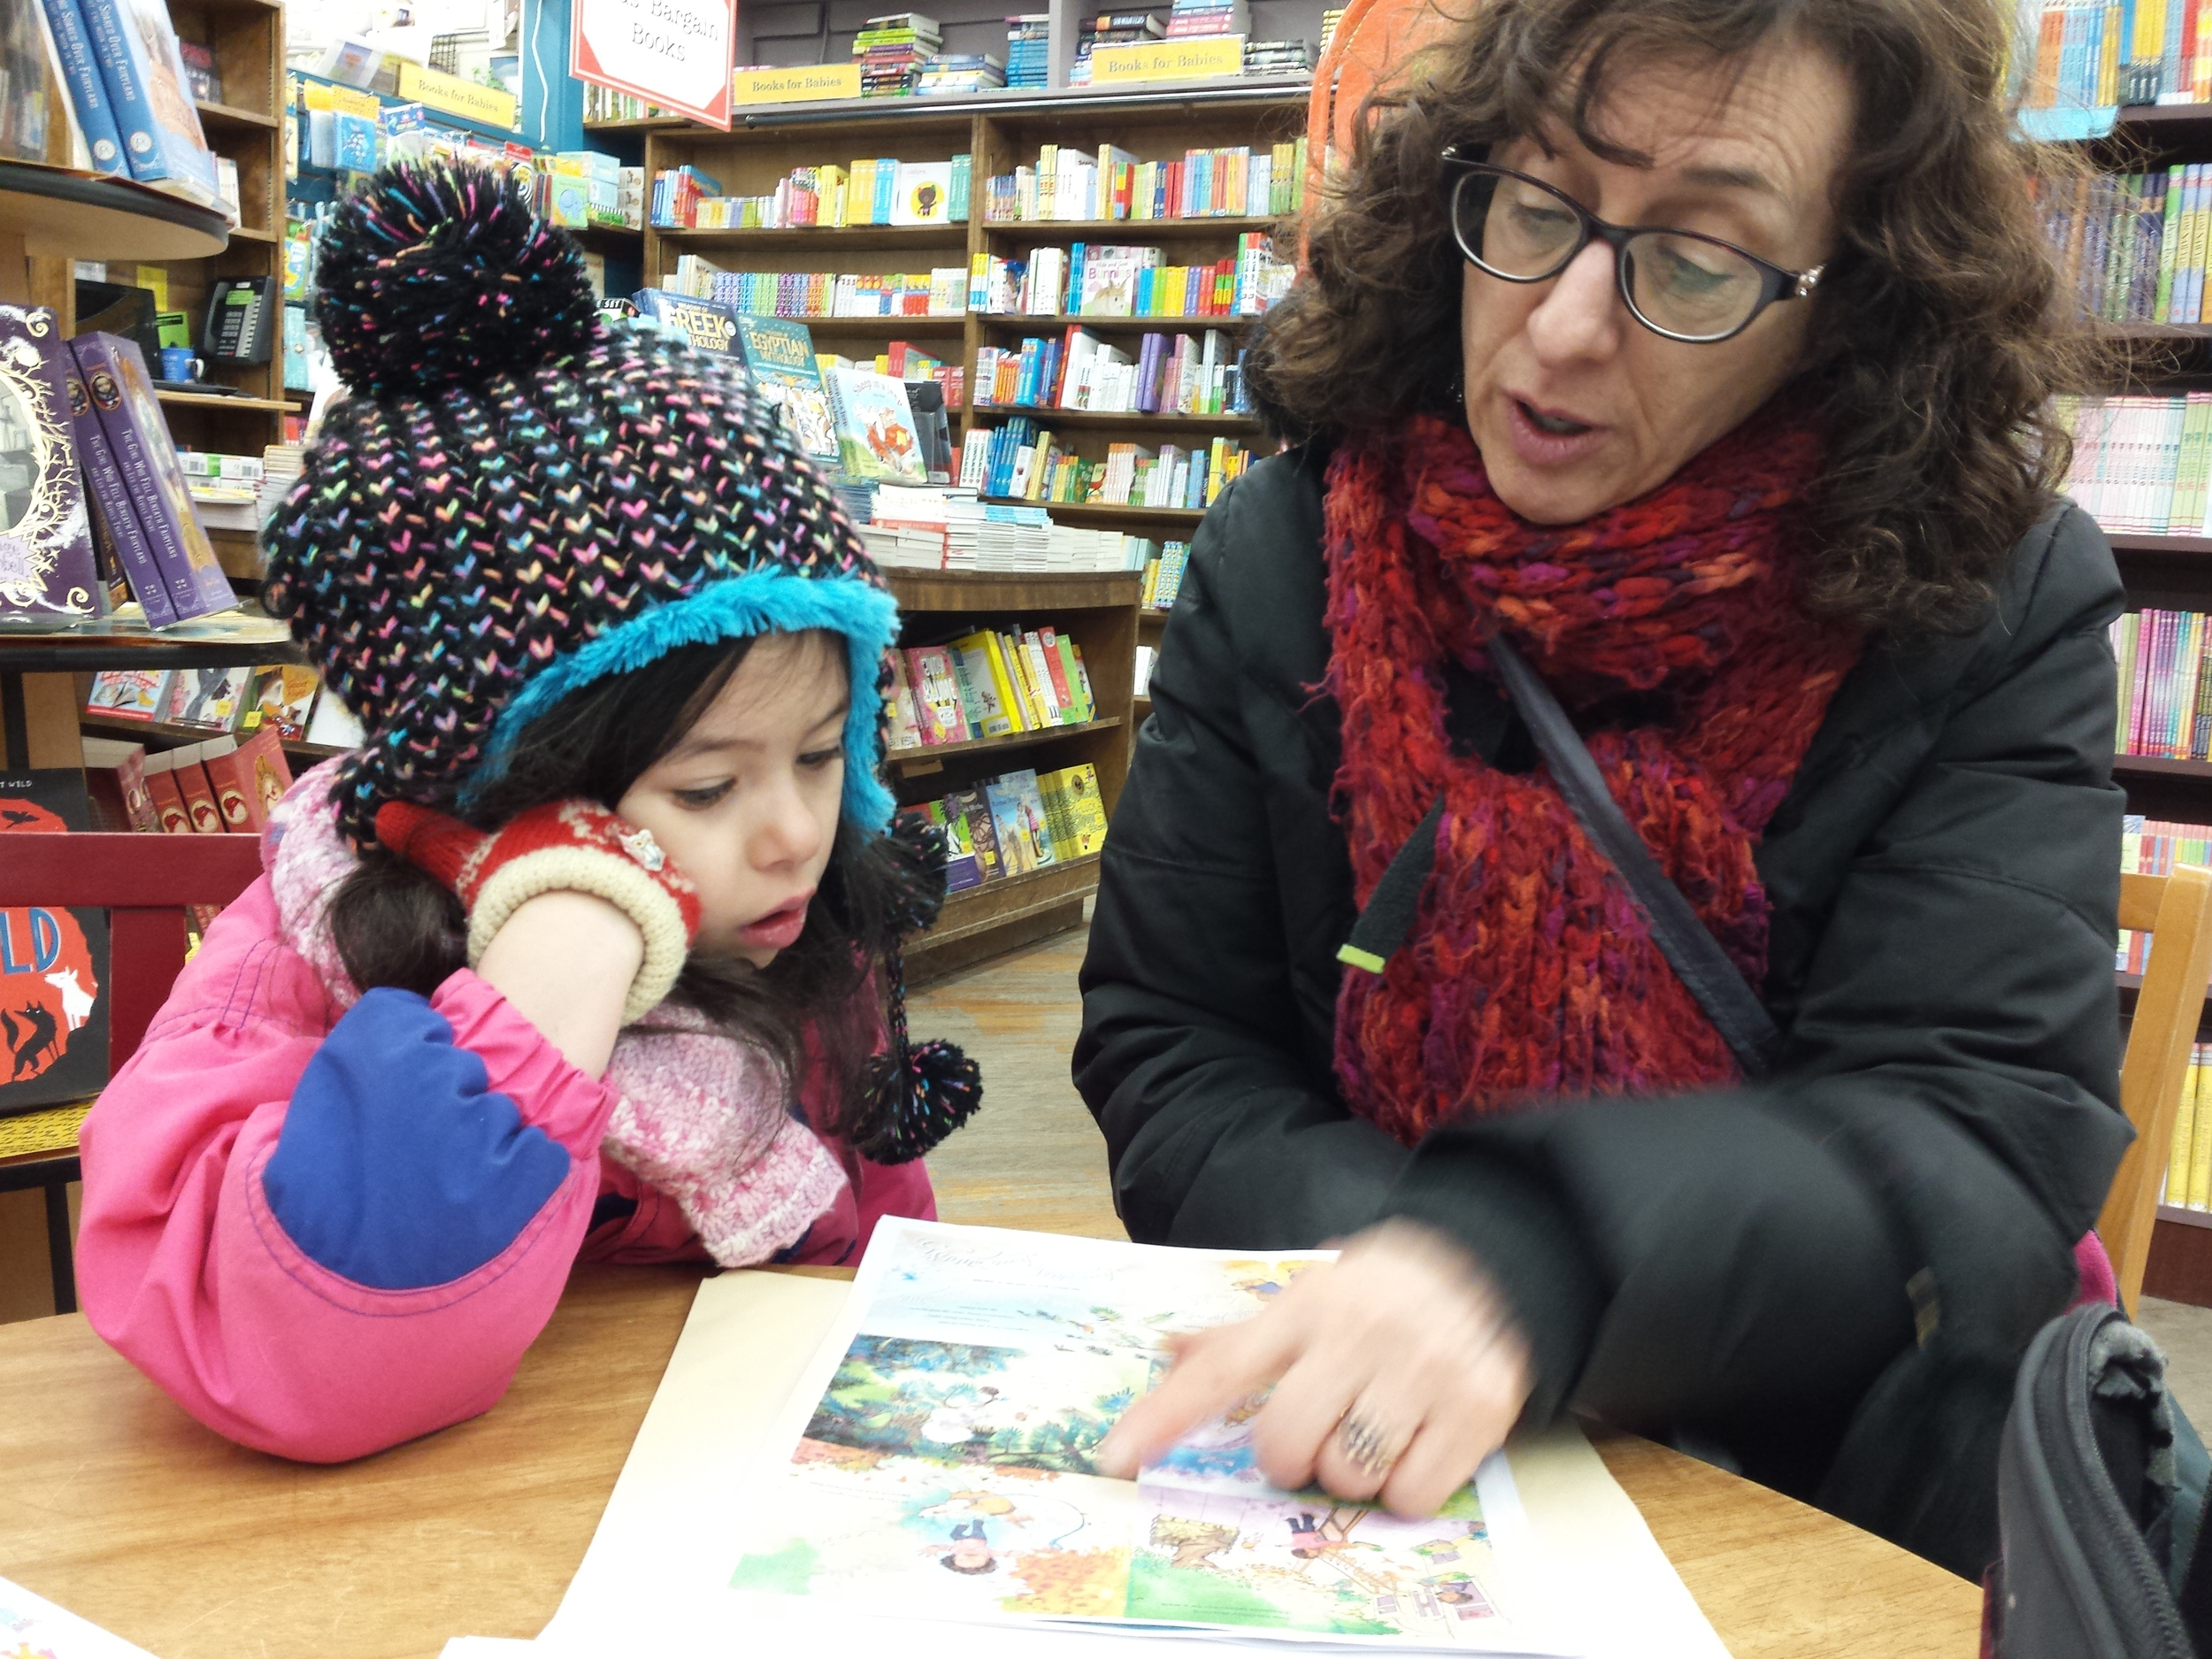 Mollie looks at the galleys with her author aunt. Brookline Booksmith, March 2015